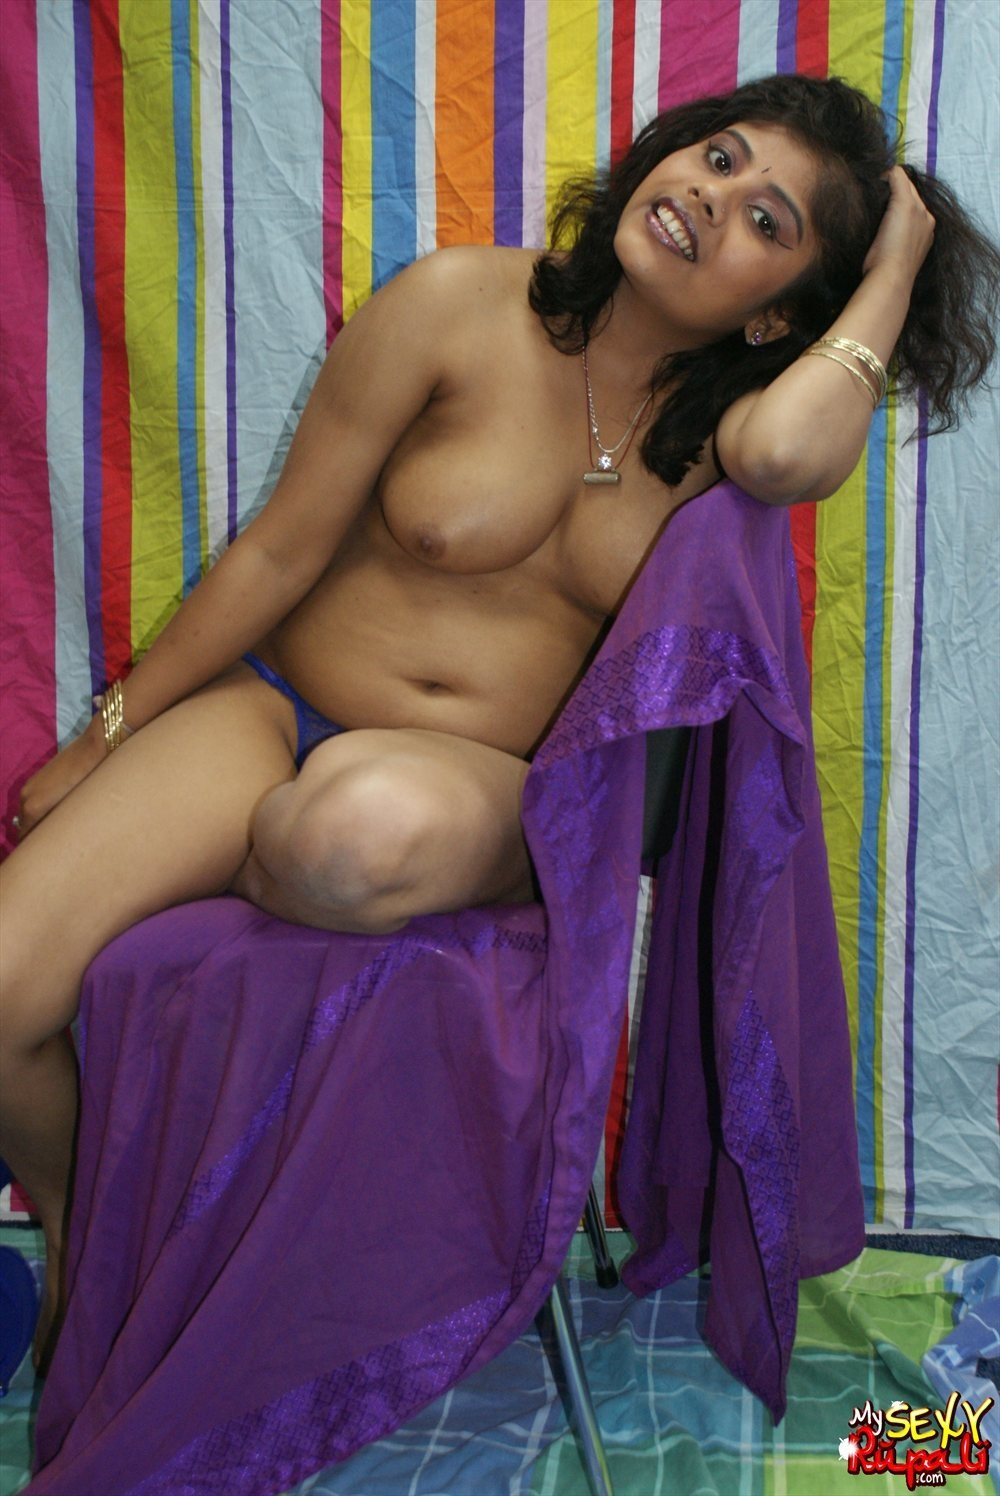 South india sexwoman picture — img 3